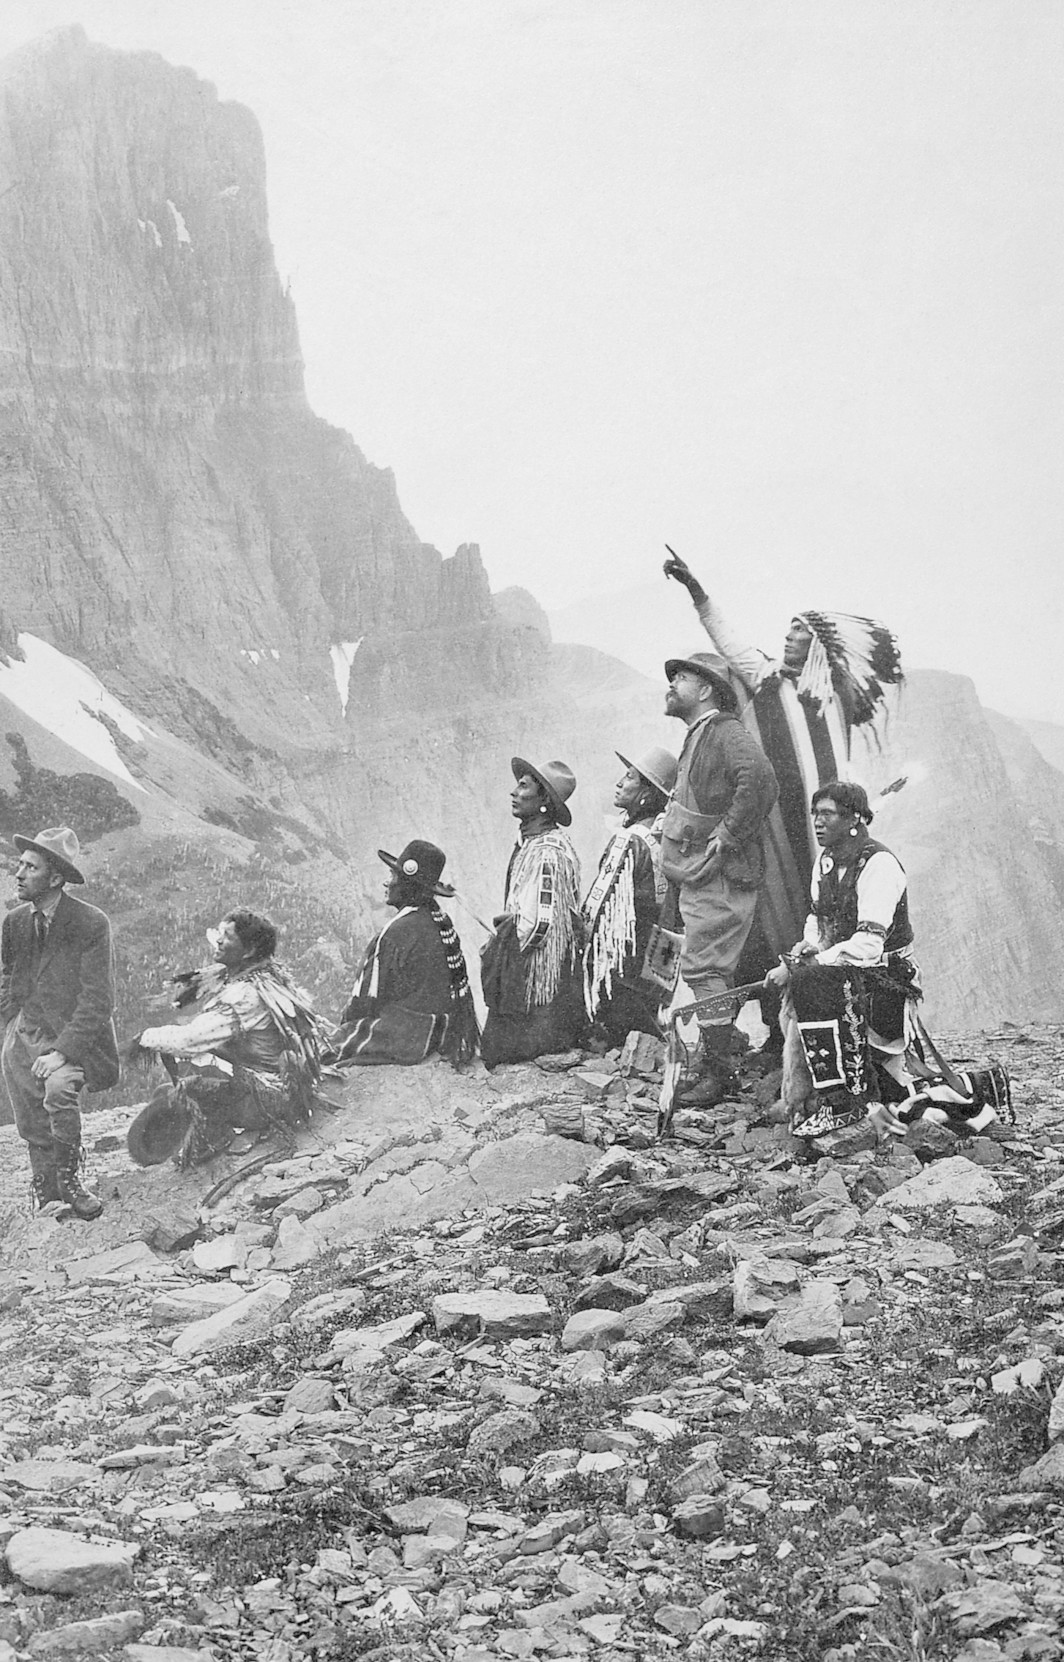 Edward S. Curtis with an unidentified group of American Indians, date and photographer unknown.